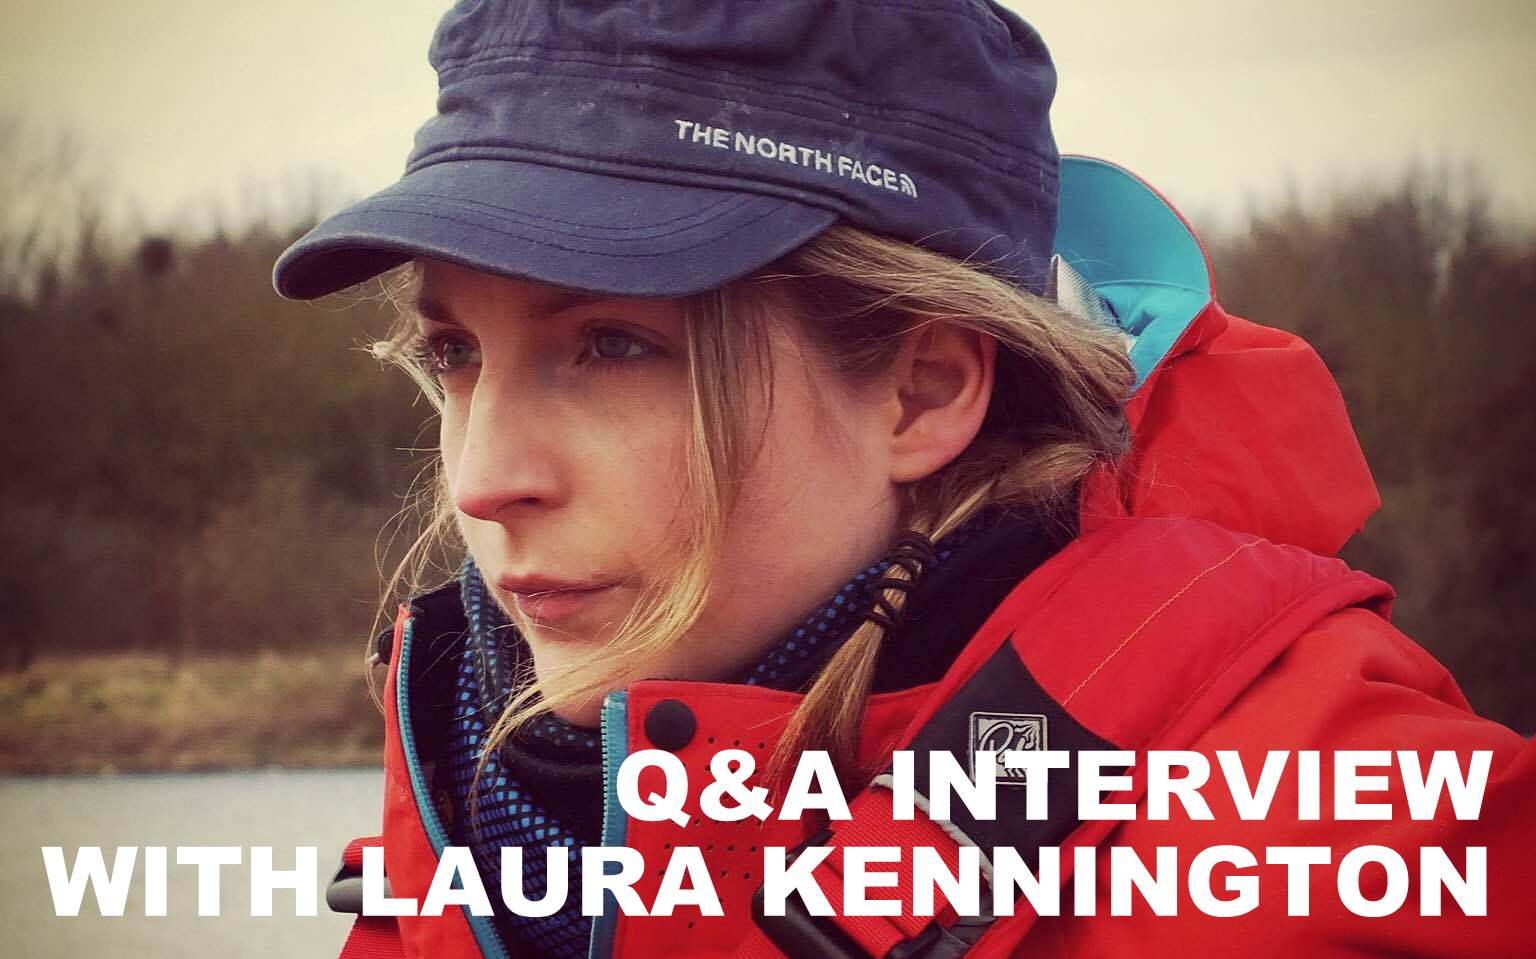 Q&A INTERVIEW WITH LAYRA KENNINGTON